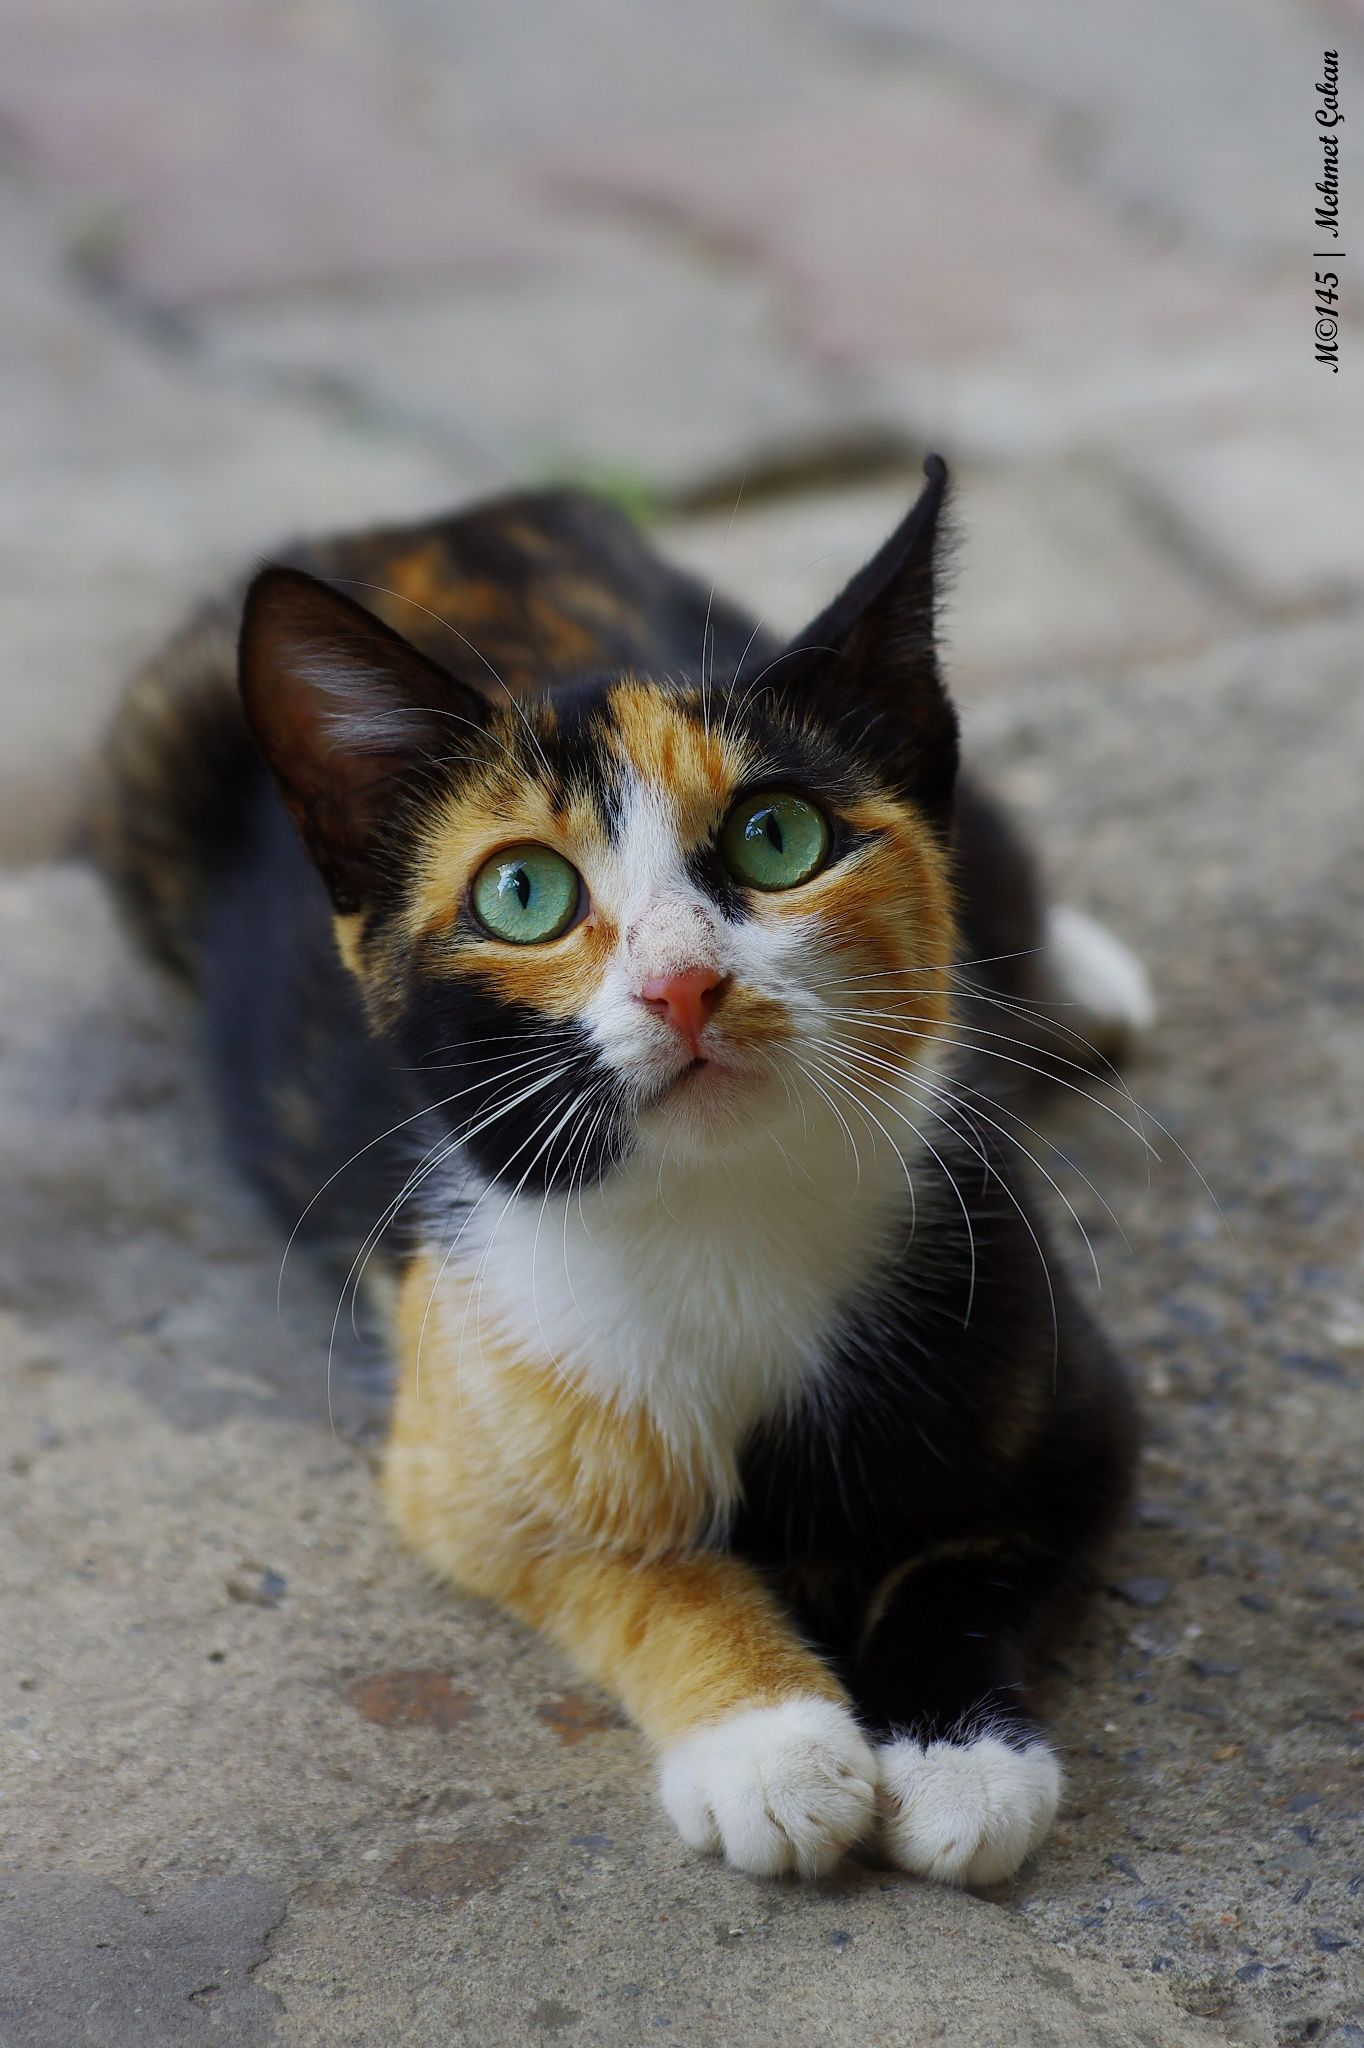 Autumnleaf, shecat, is wise and agile. Very loyal and